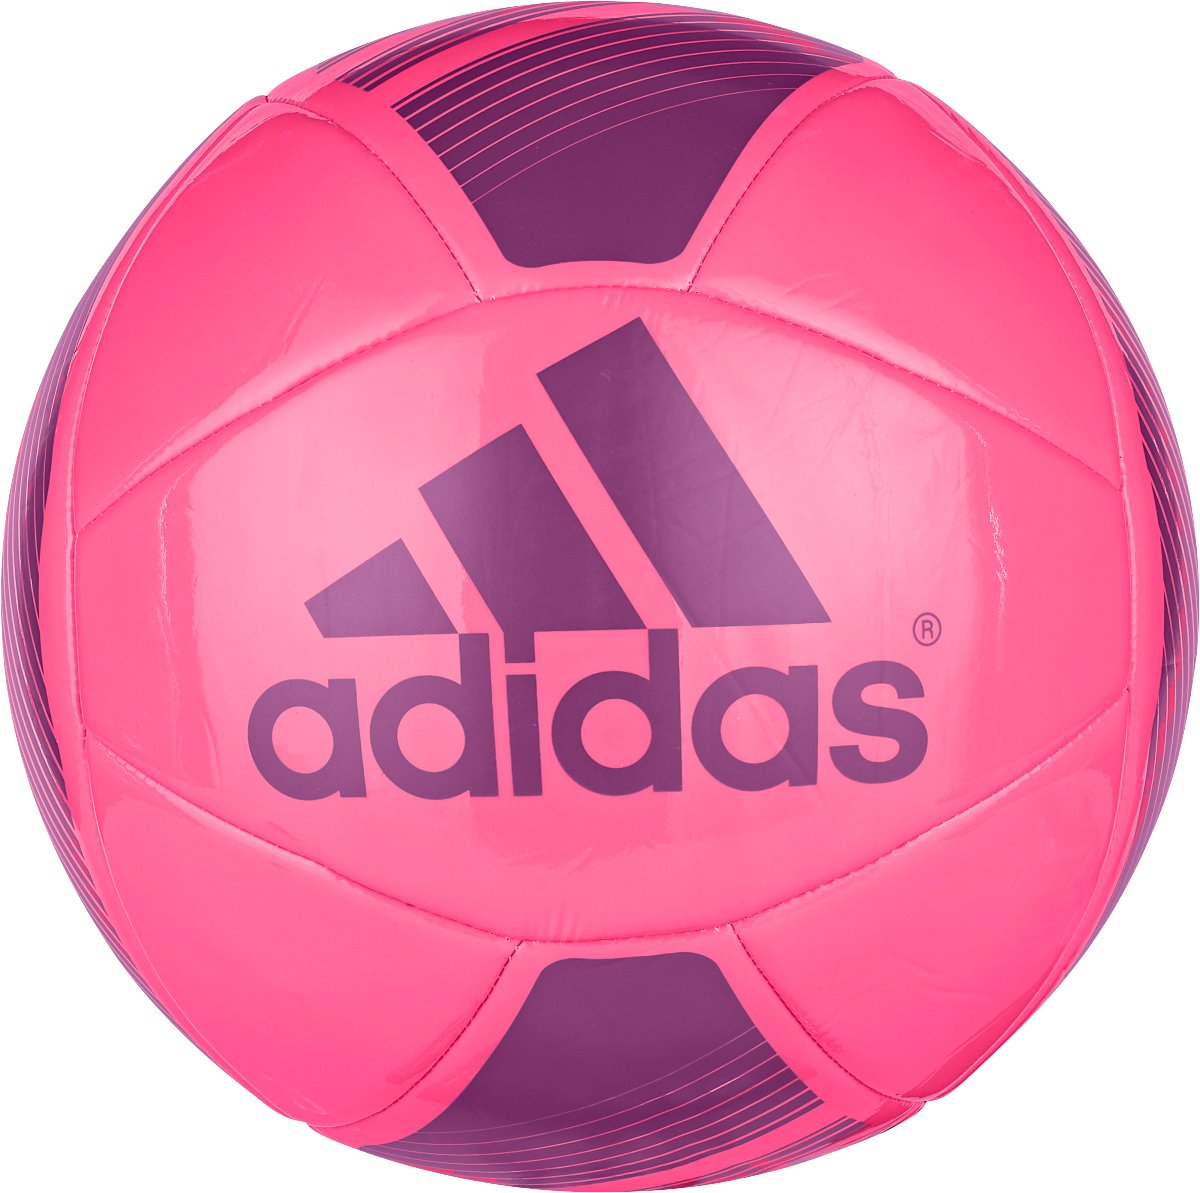 dfef6f11e Display product reviews for adidas EPP Glider Soccer Ball